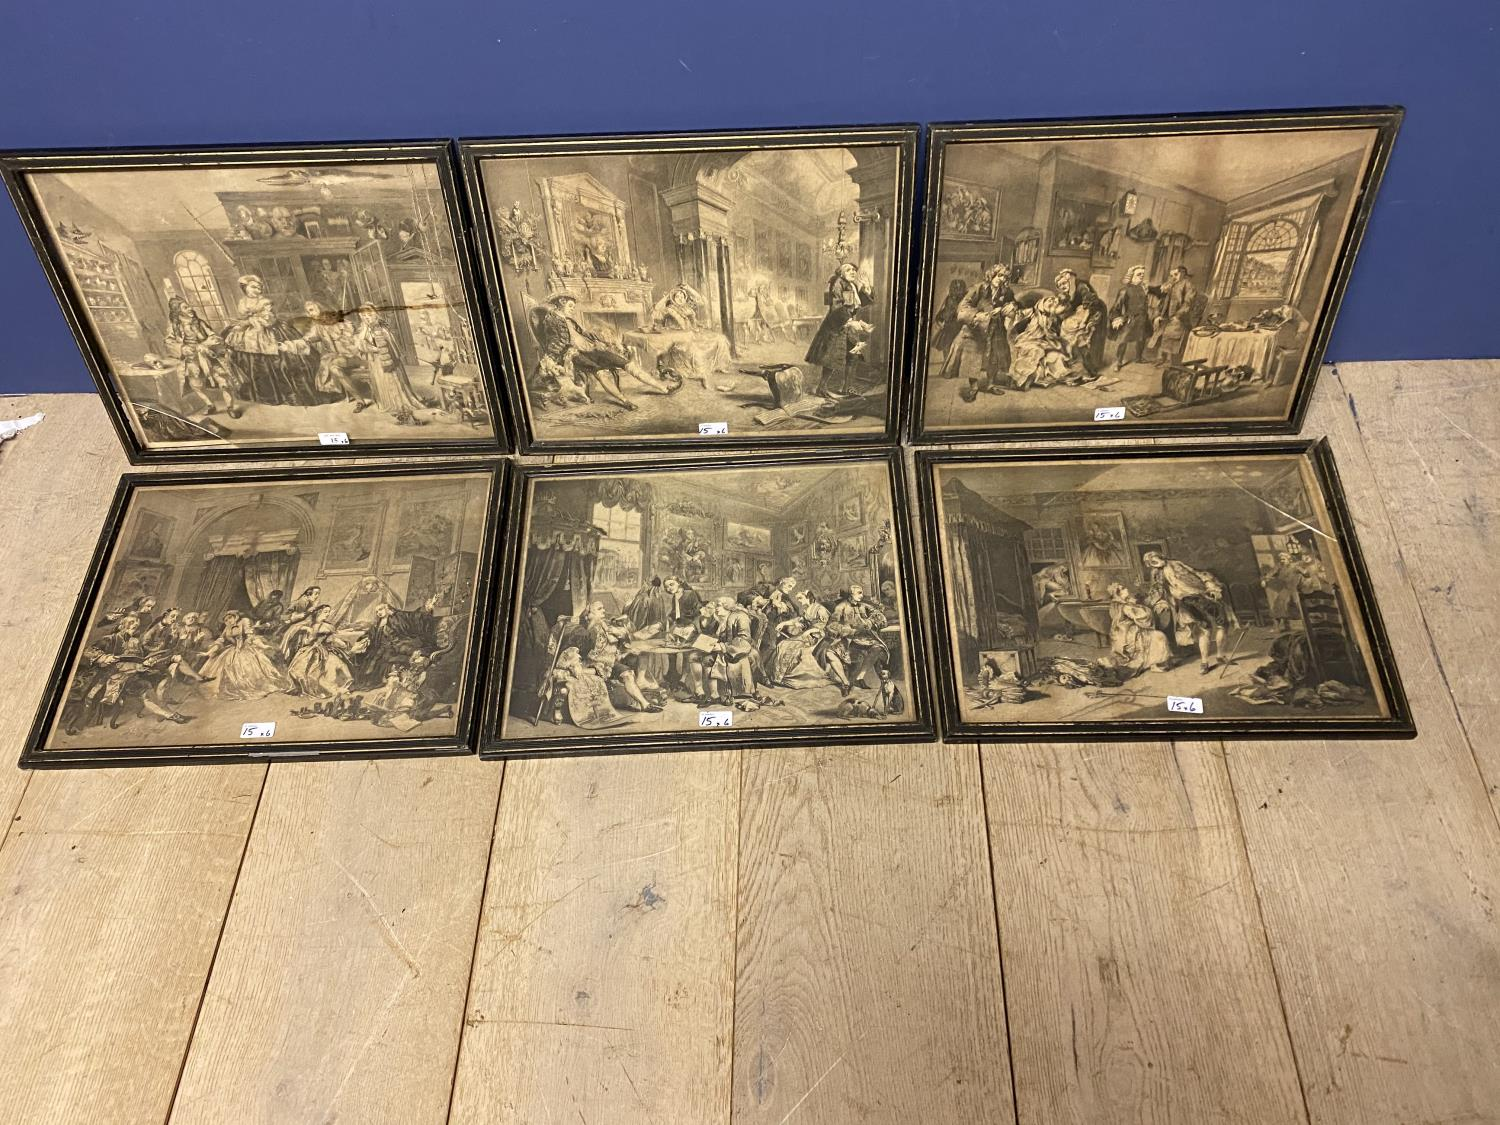 Six Hogarth black and white engravings, various plates, including Marriage a la Mode, in original